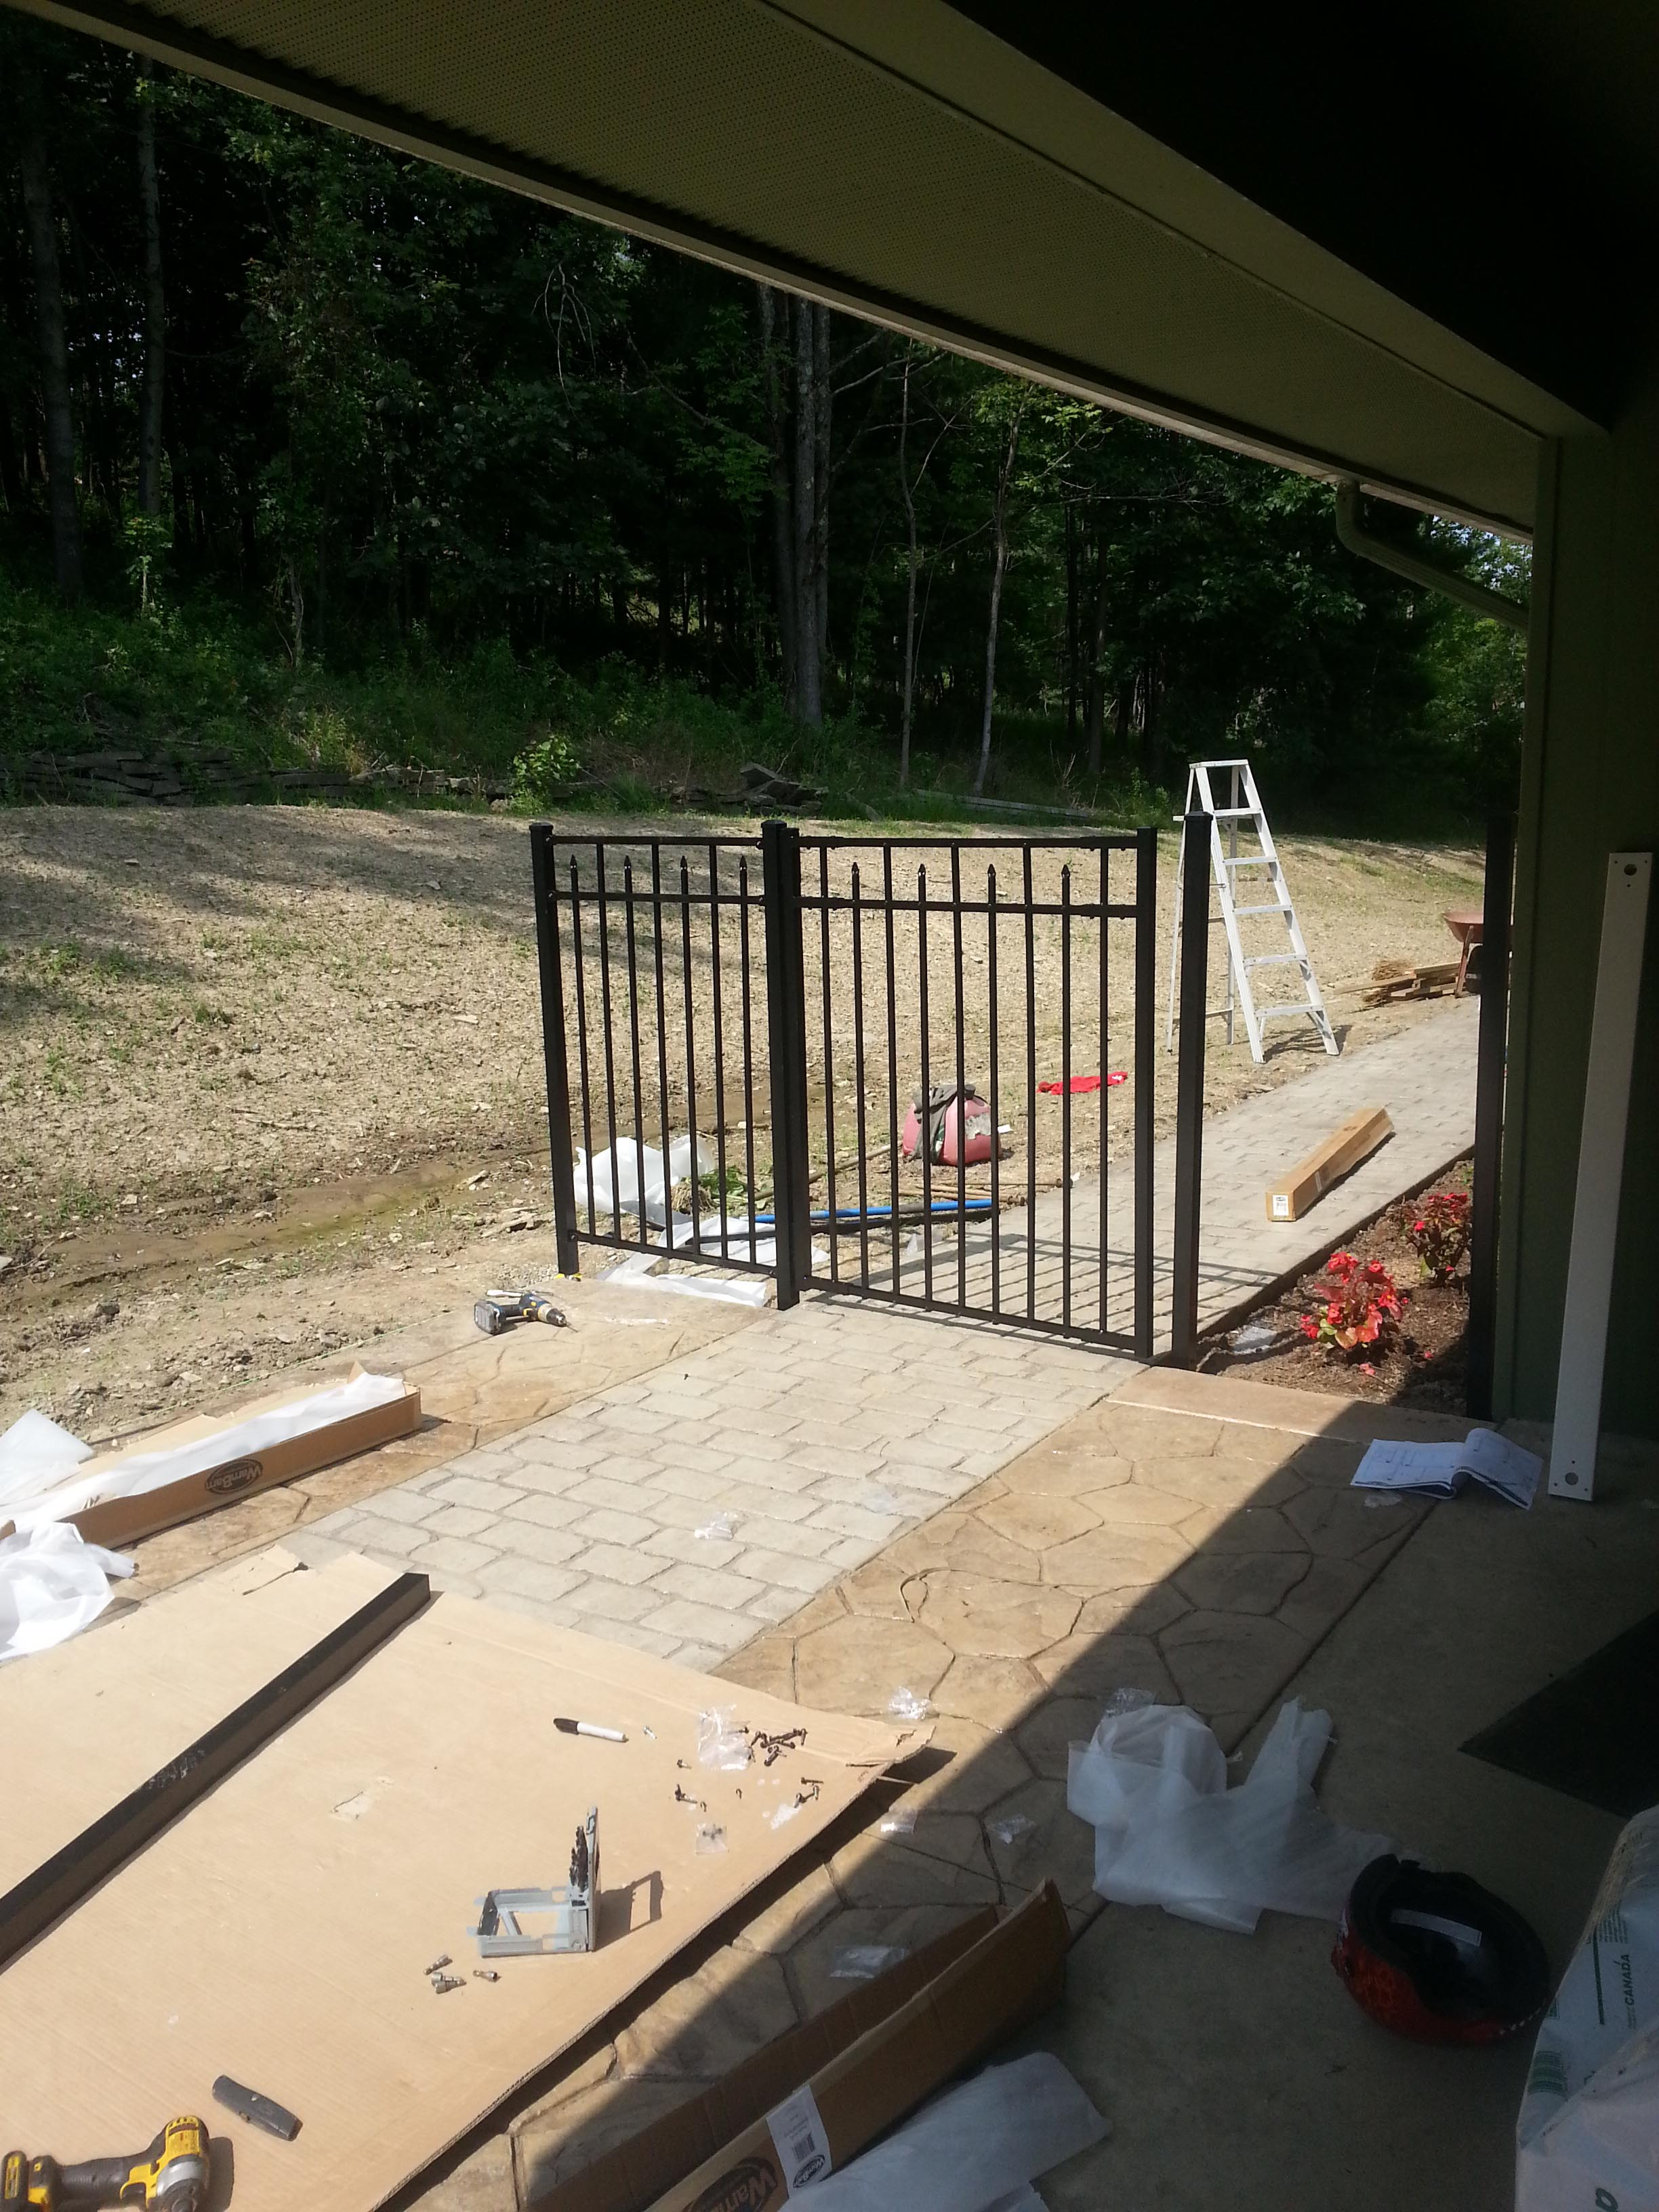 Assembling and installing the aluminum gate